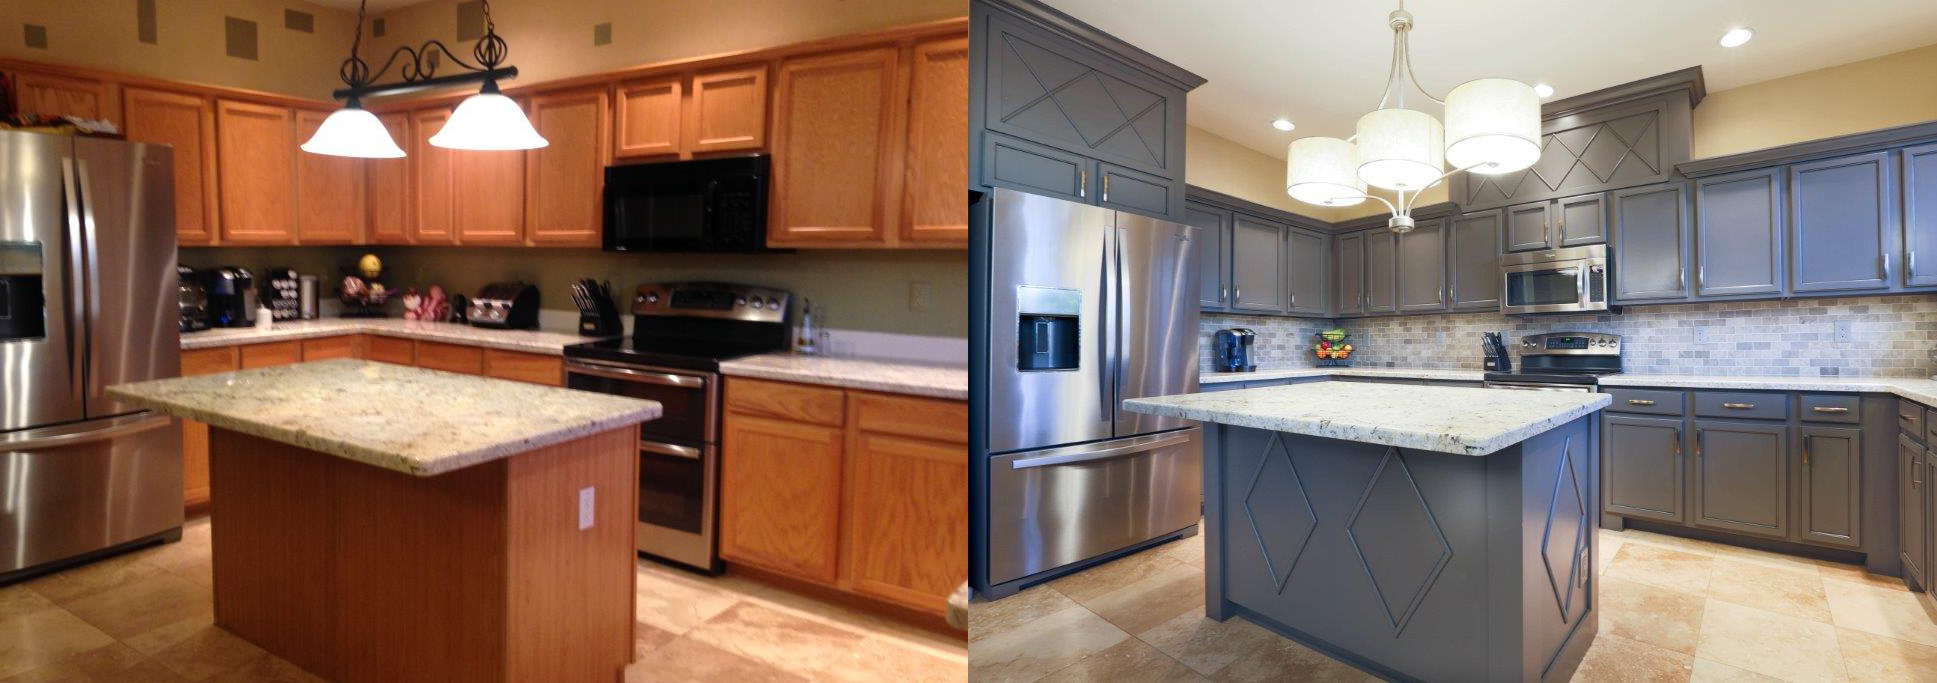 cabinet refinishing refinishing kitchen cabinets kitchen cabinets refinished 6